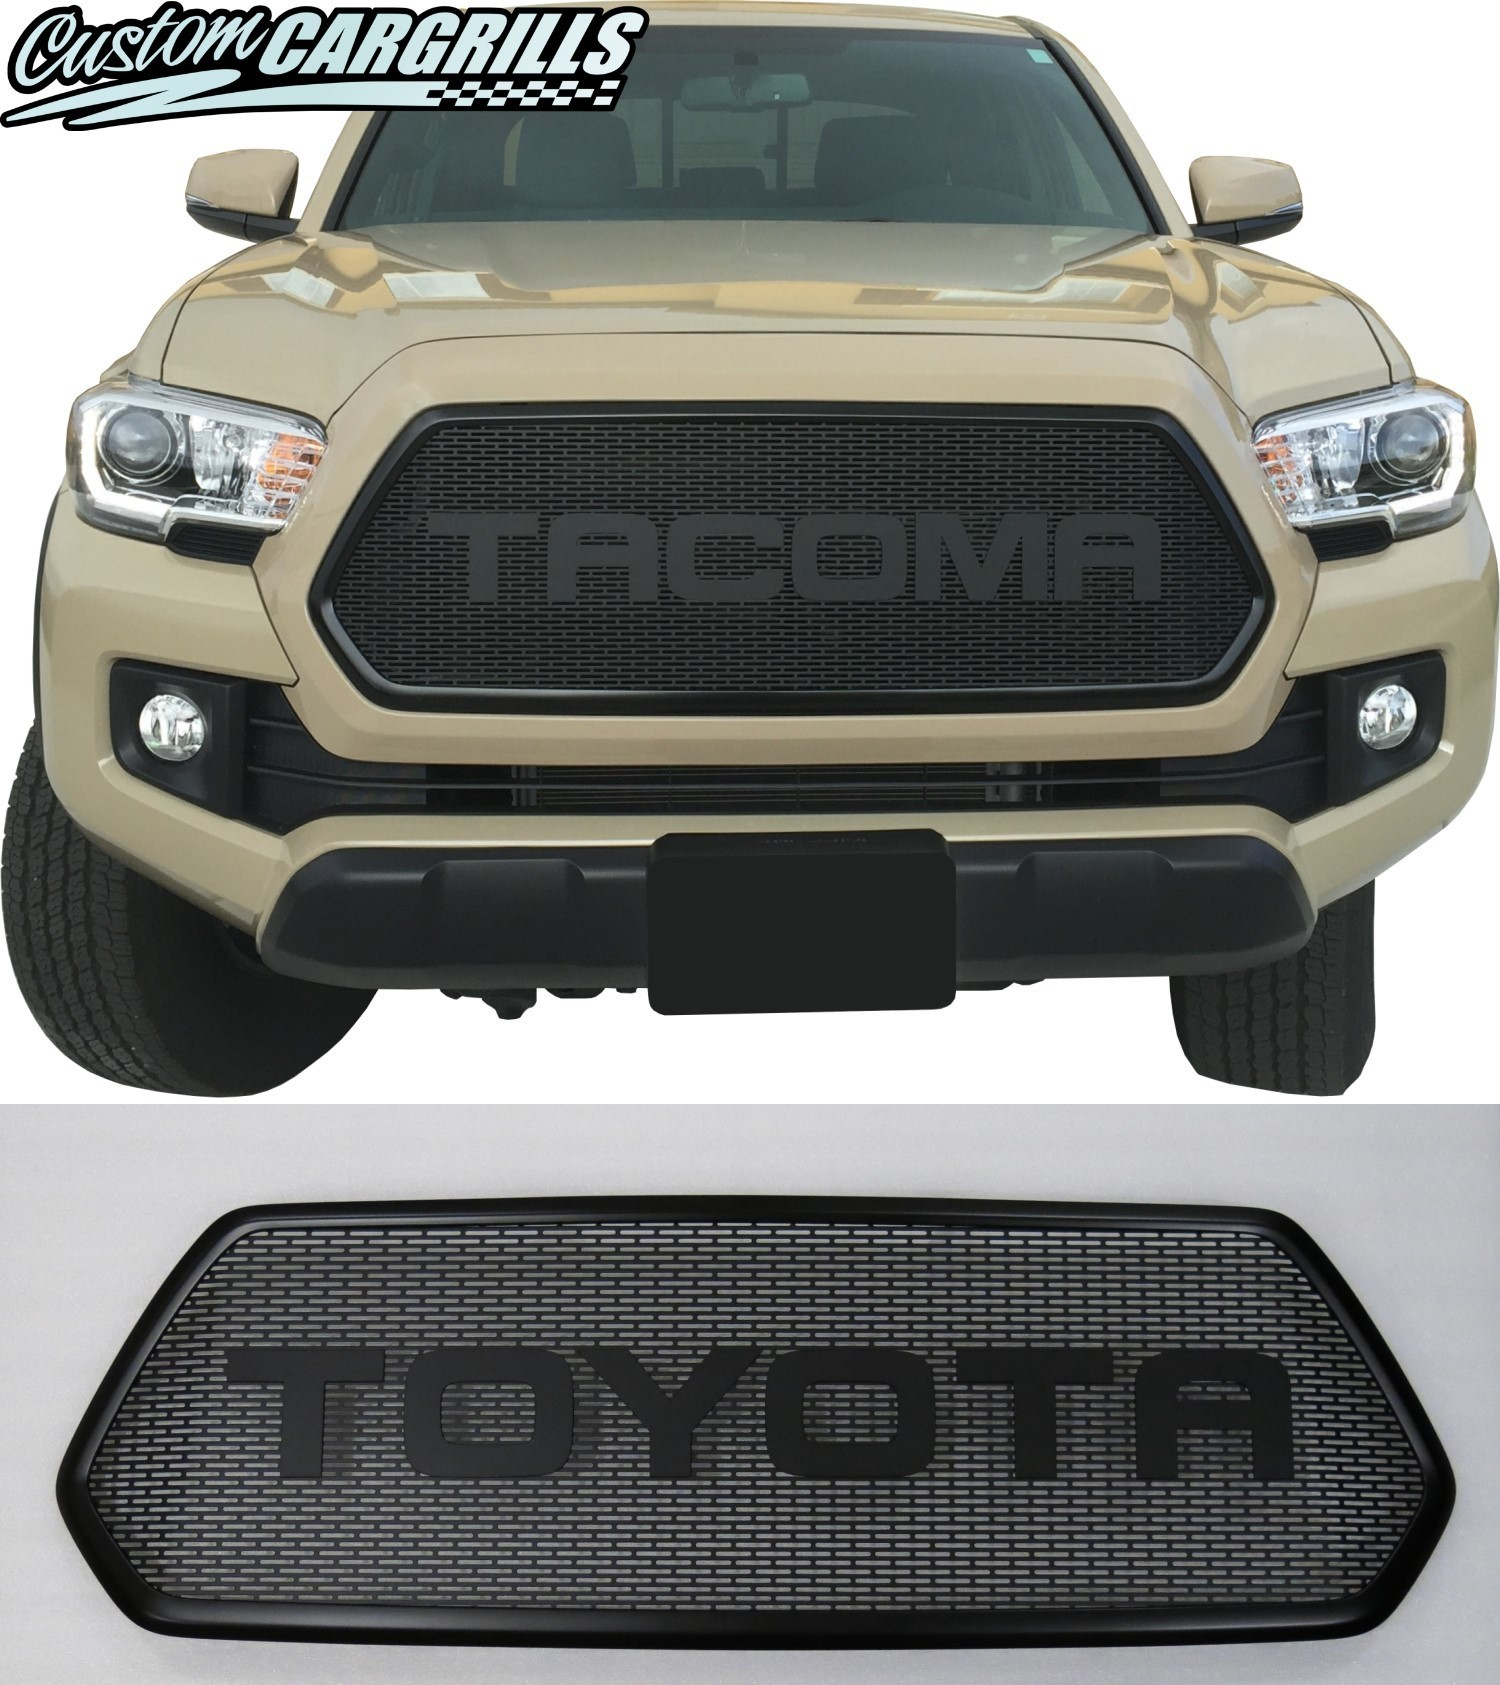 Custom Mesh Grills For 2016+ Toyota Tacomas By